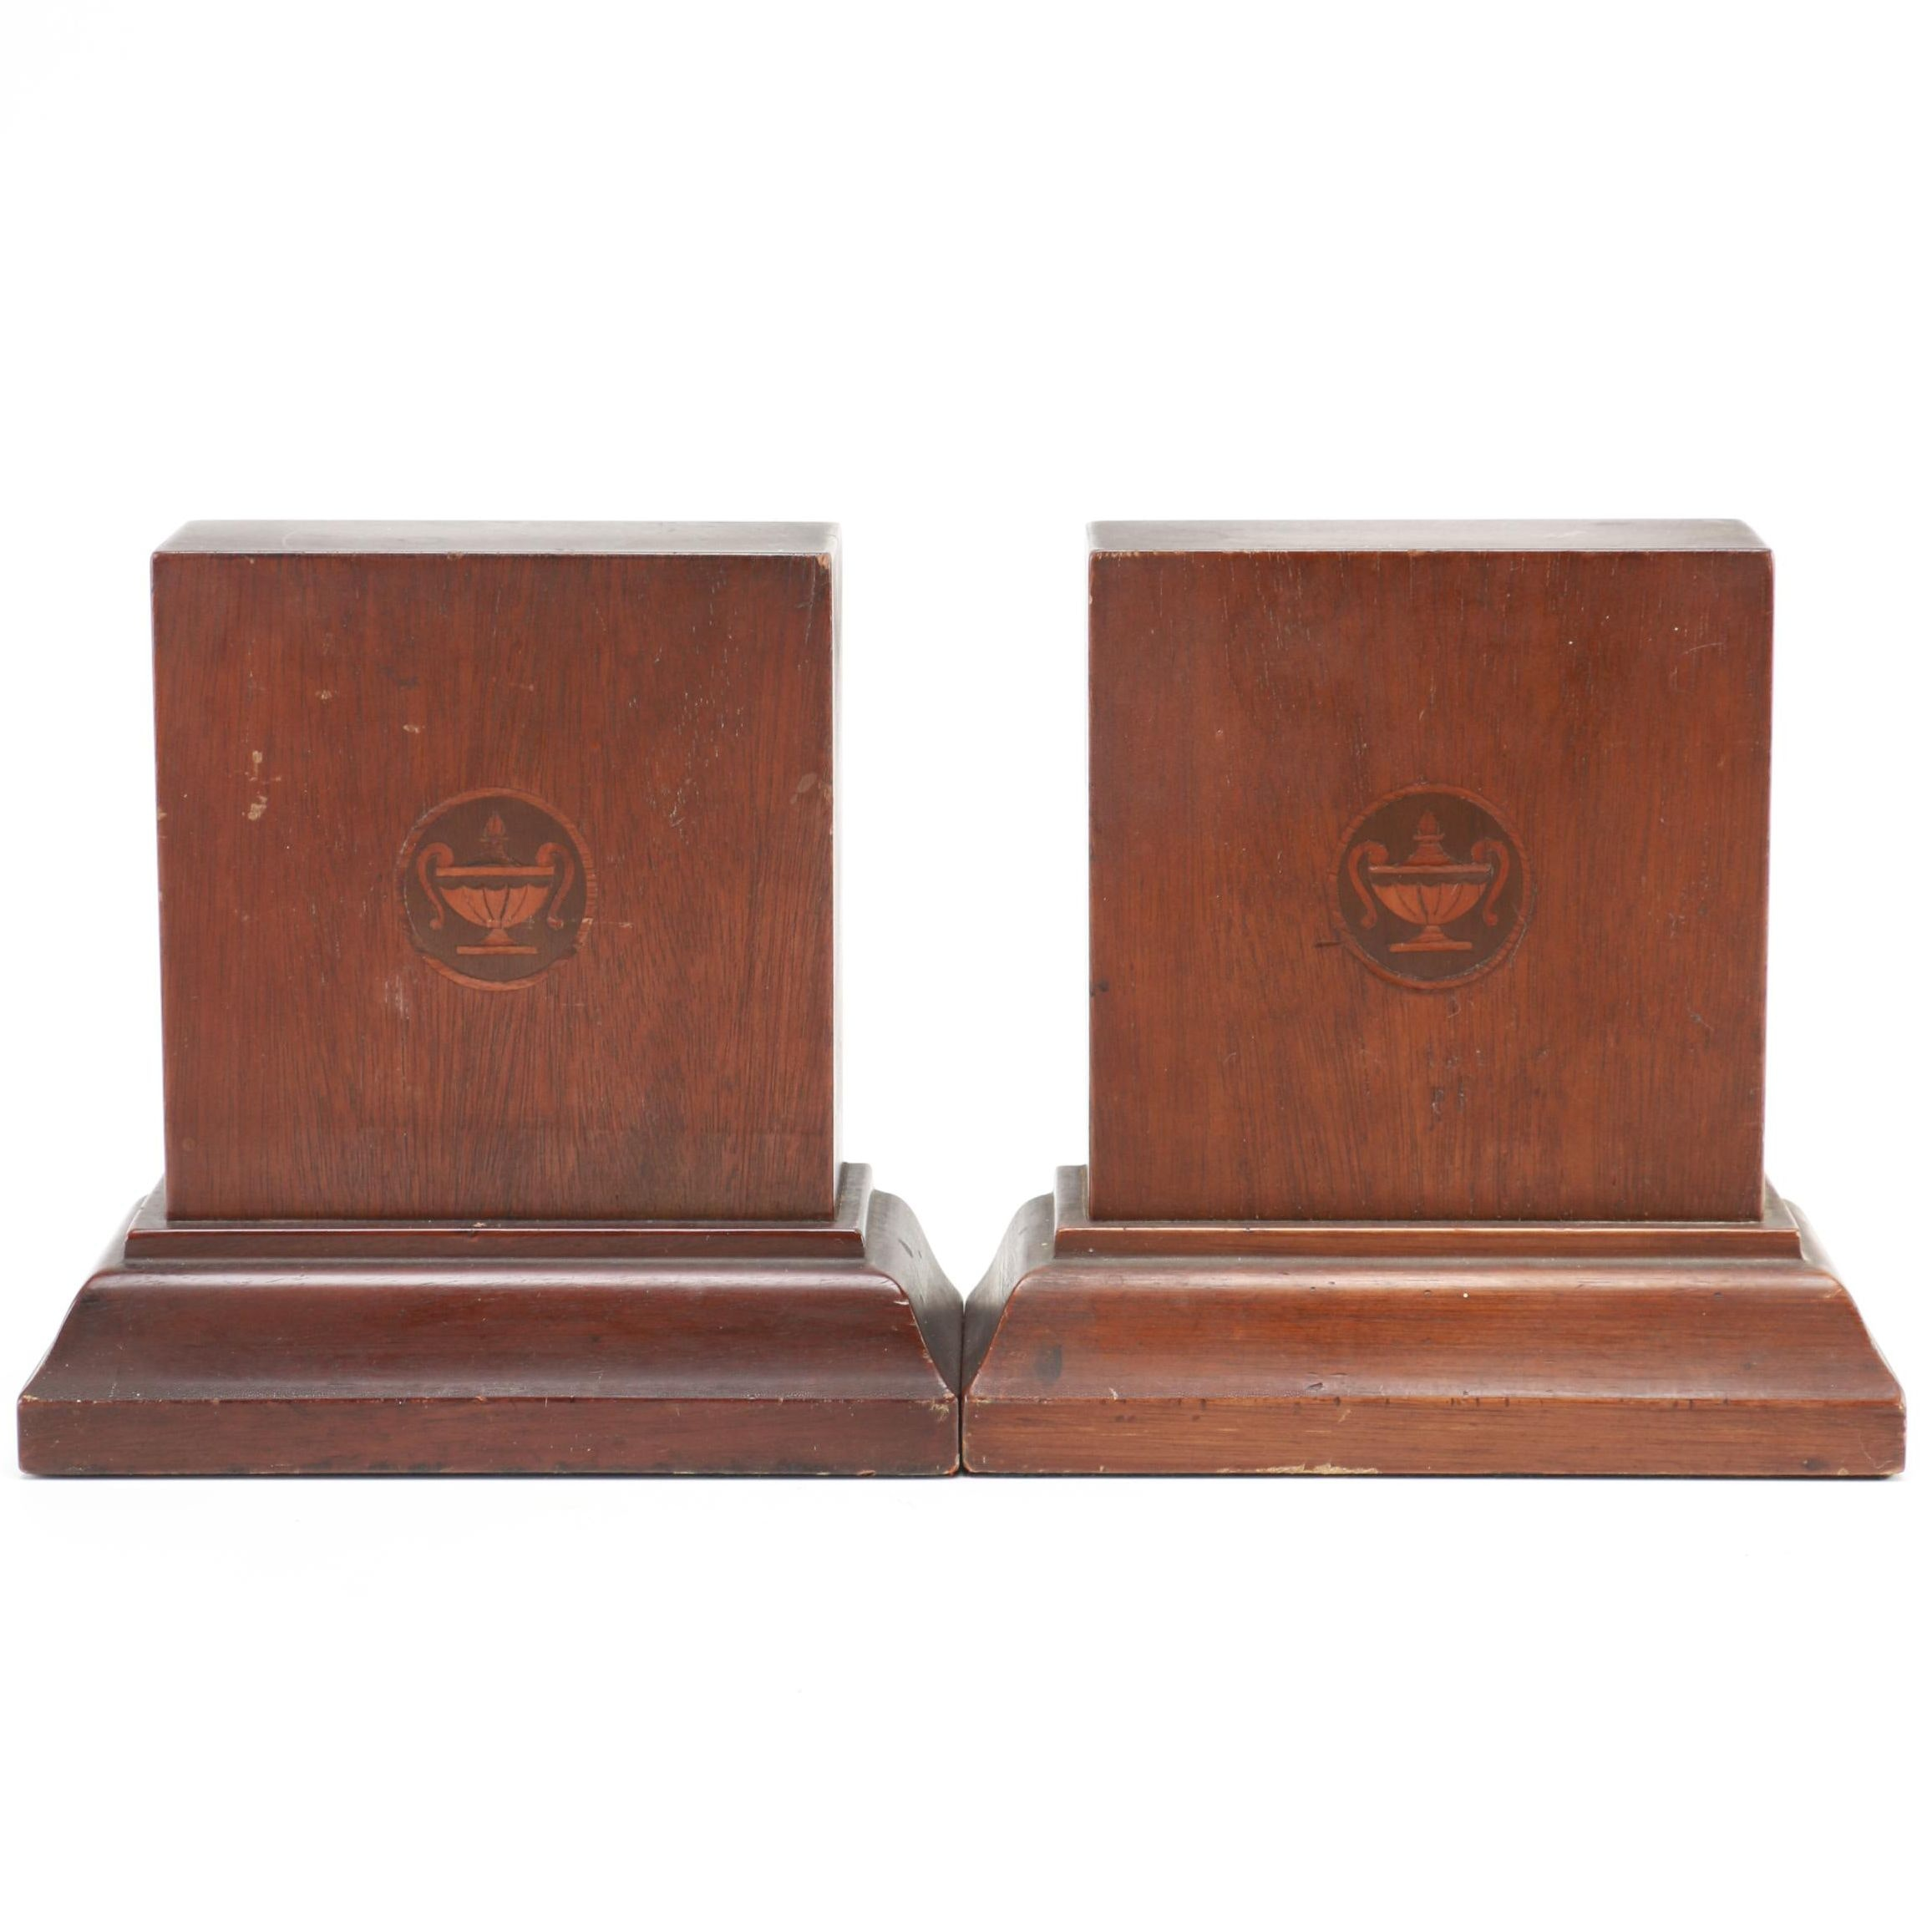 Mahogany Bookends With Inlaid Decoration